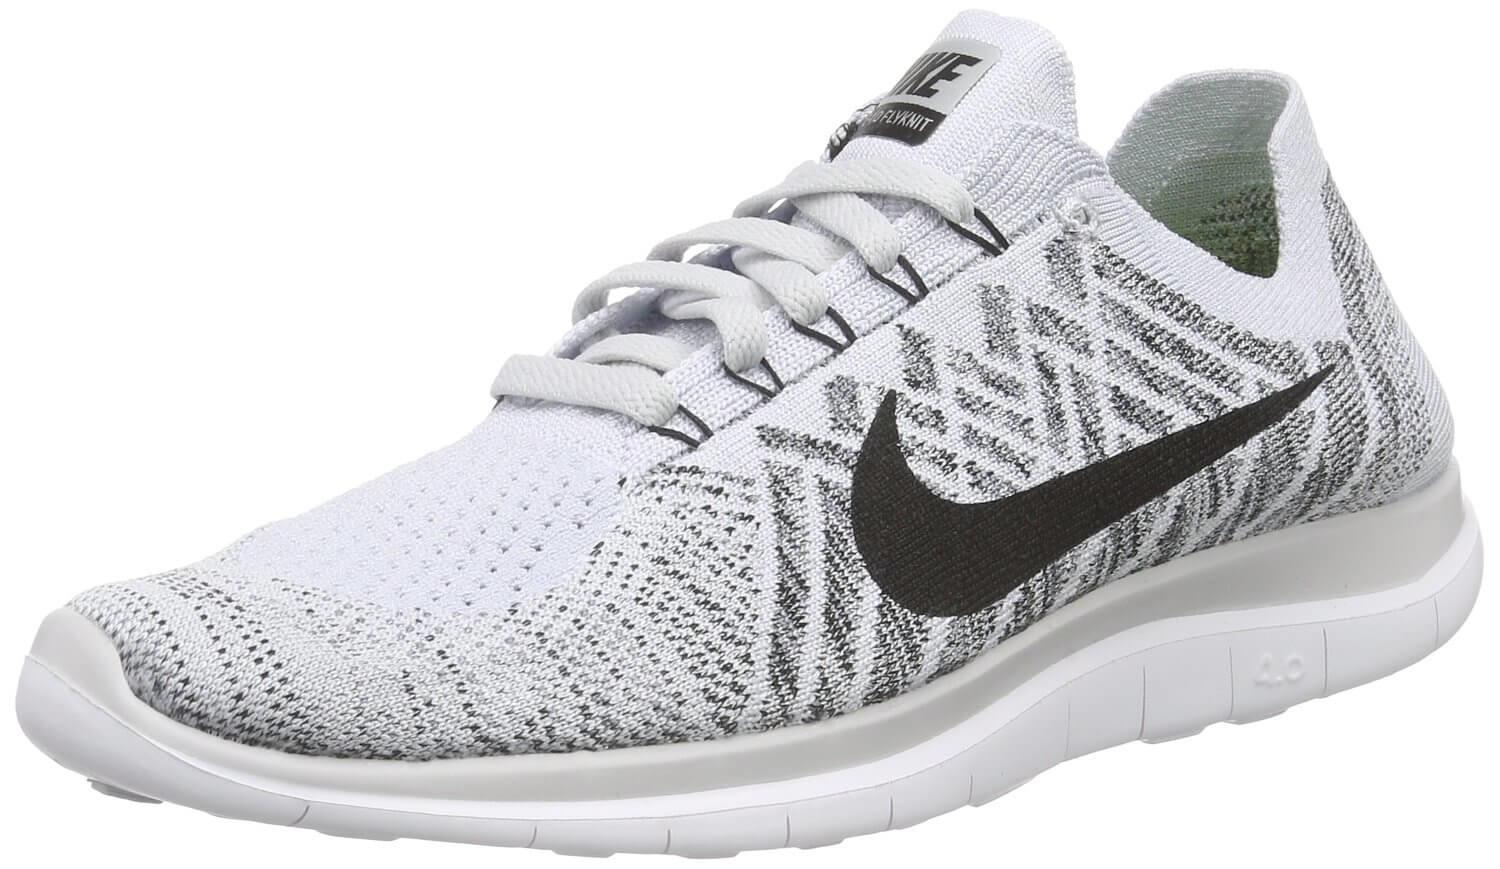 nike free 4.0 flyknit 2015 review